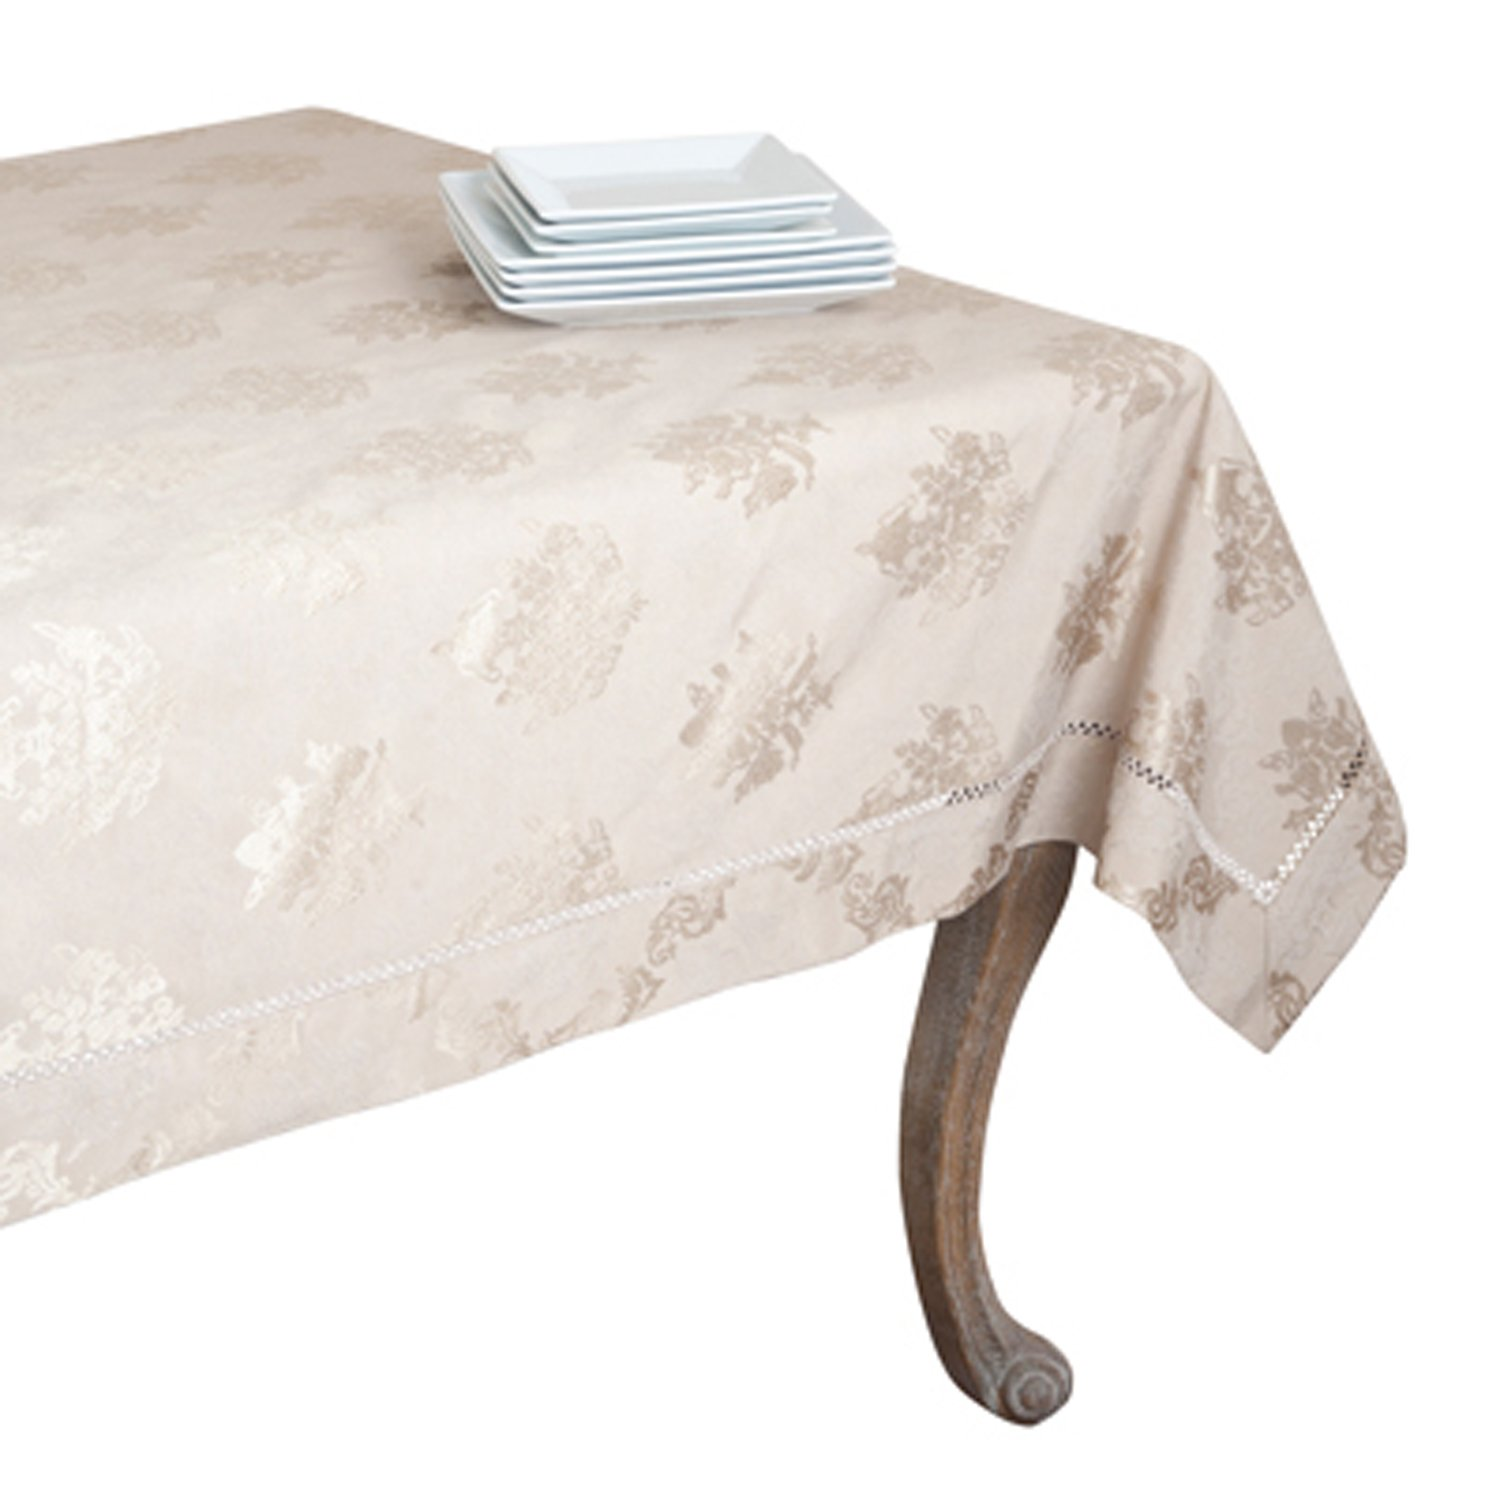 SARO LIFESTYLE DM871 Paloma Tablecloths, 70 by 180-Inch, Oblong, White